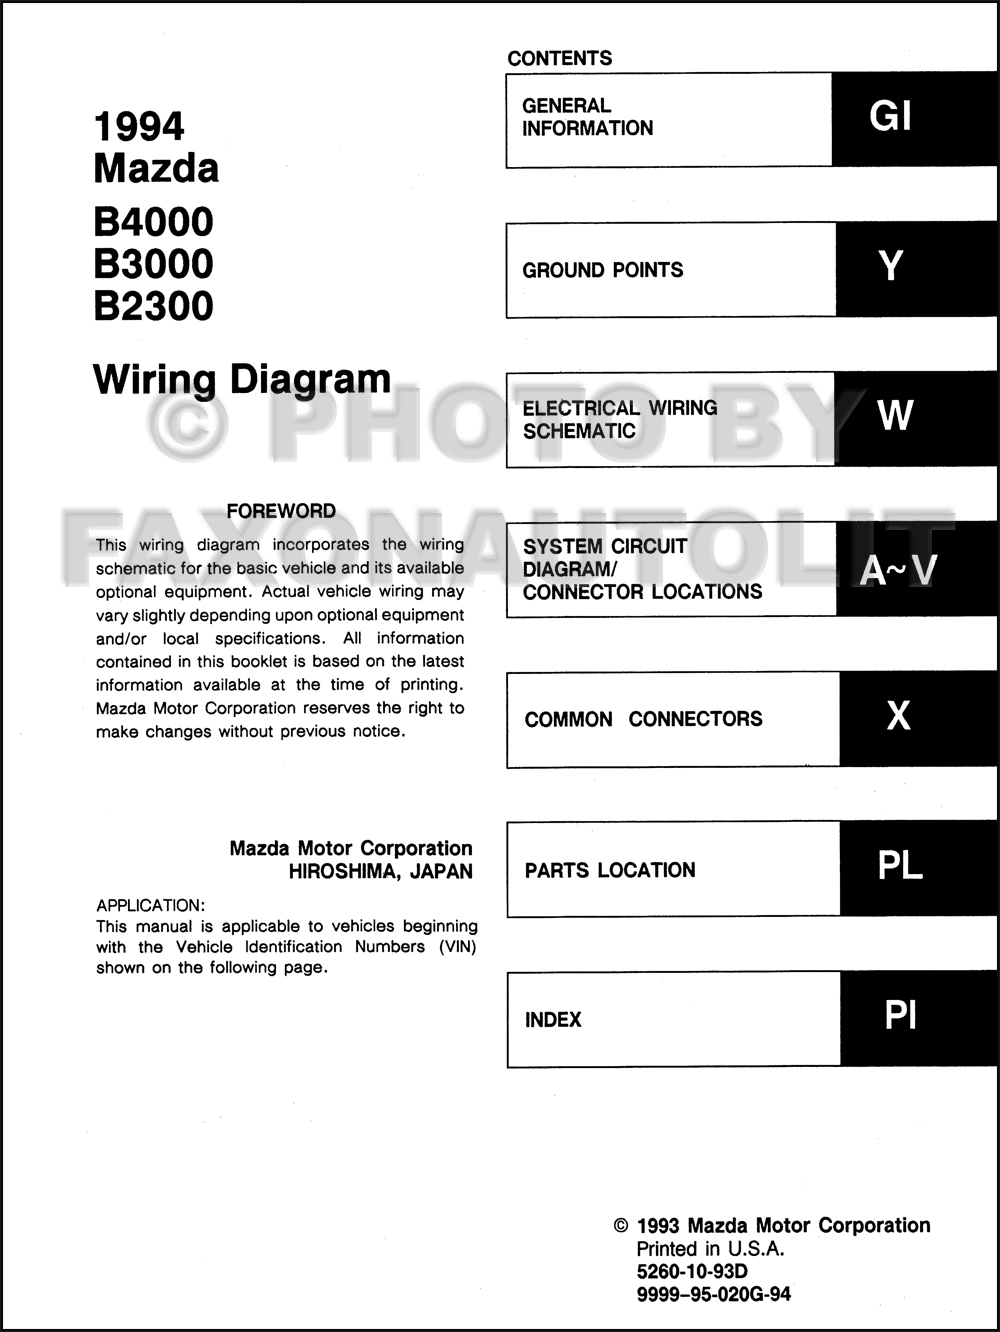 1994MazdaB4000B3000B23000OWD TOC awesome mazda b4000 wiring diagram ideas best image diagram 8we us 1998 mazda b4000 fuse box diagram at panicattacktreatment.co